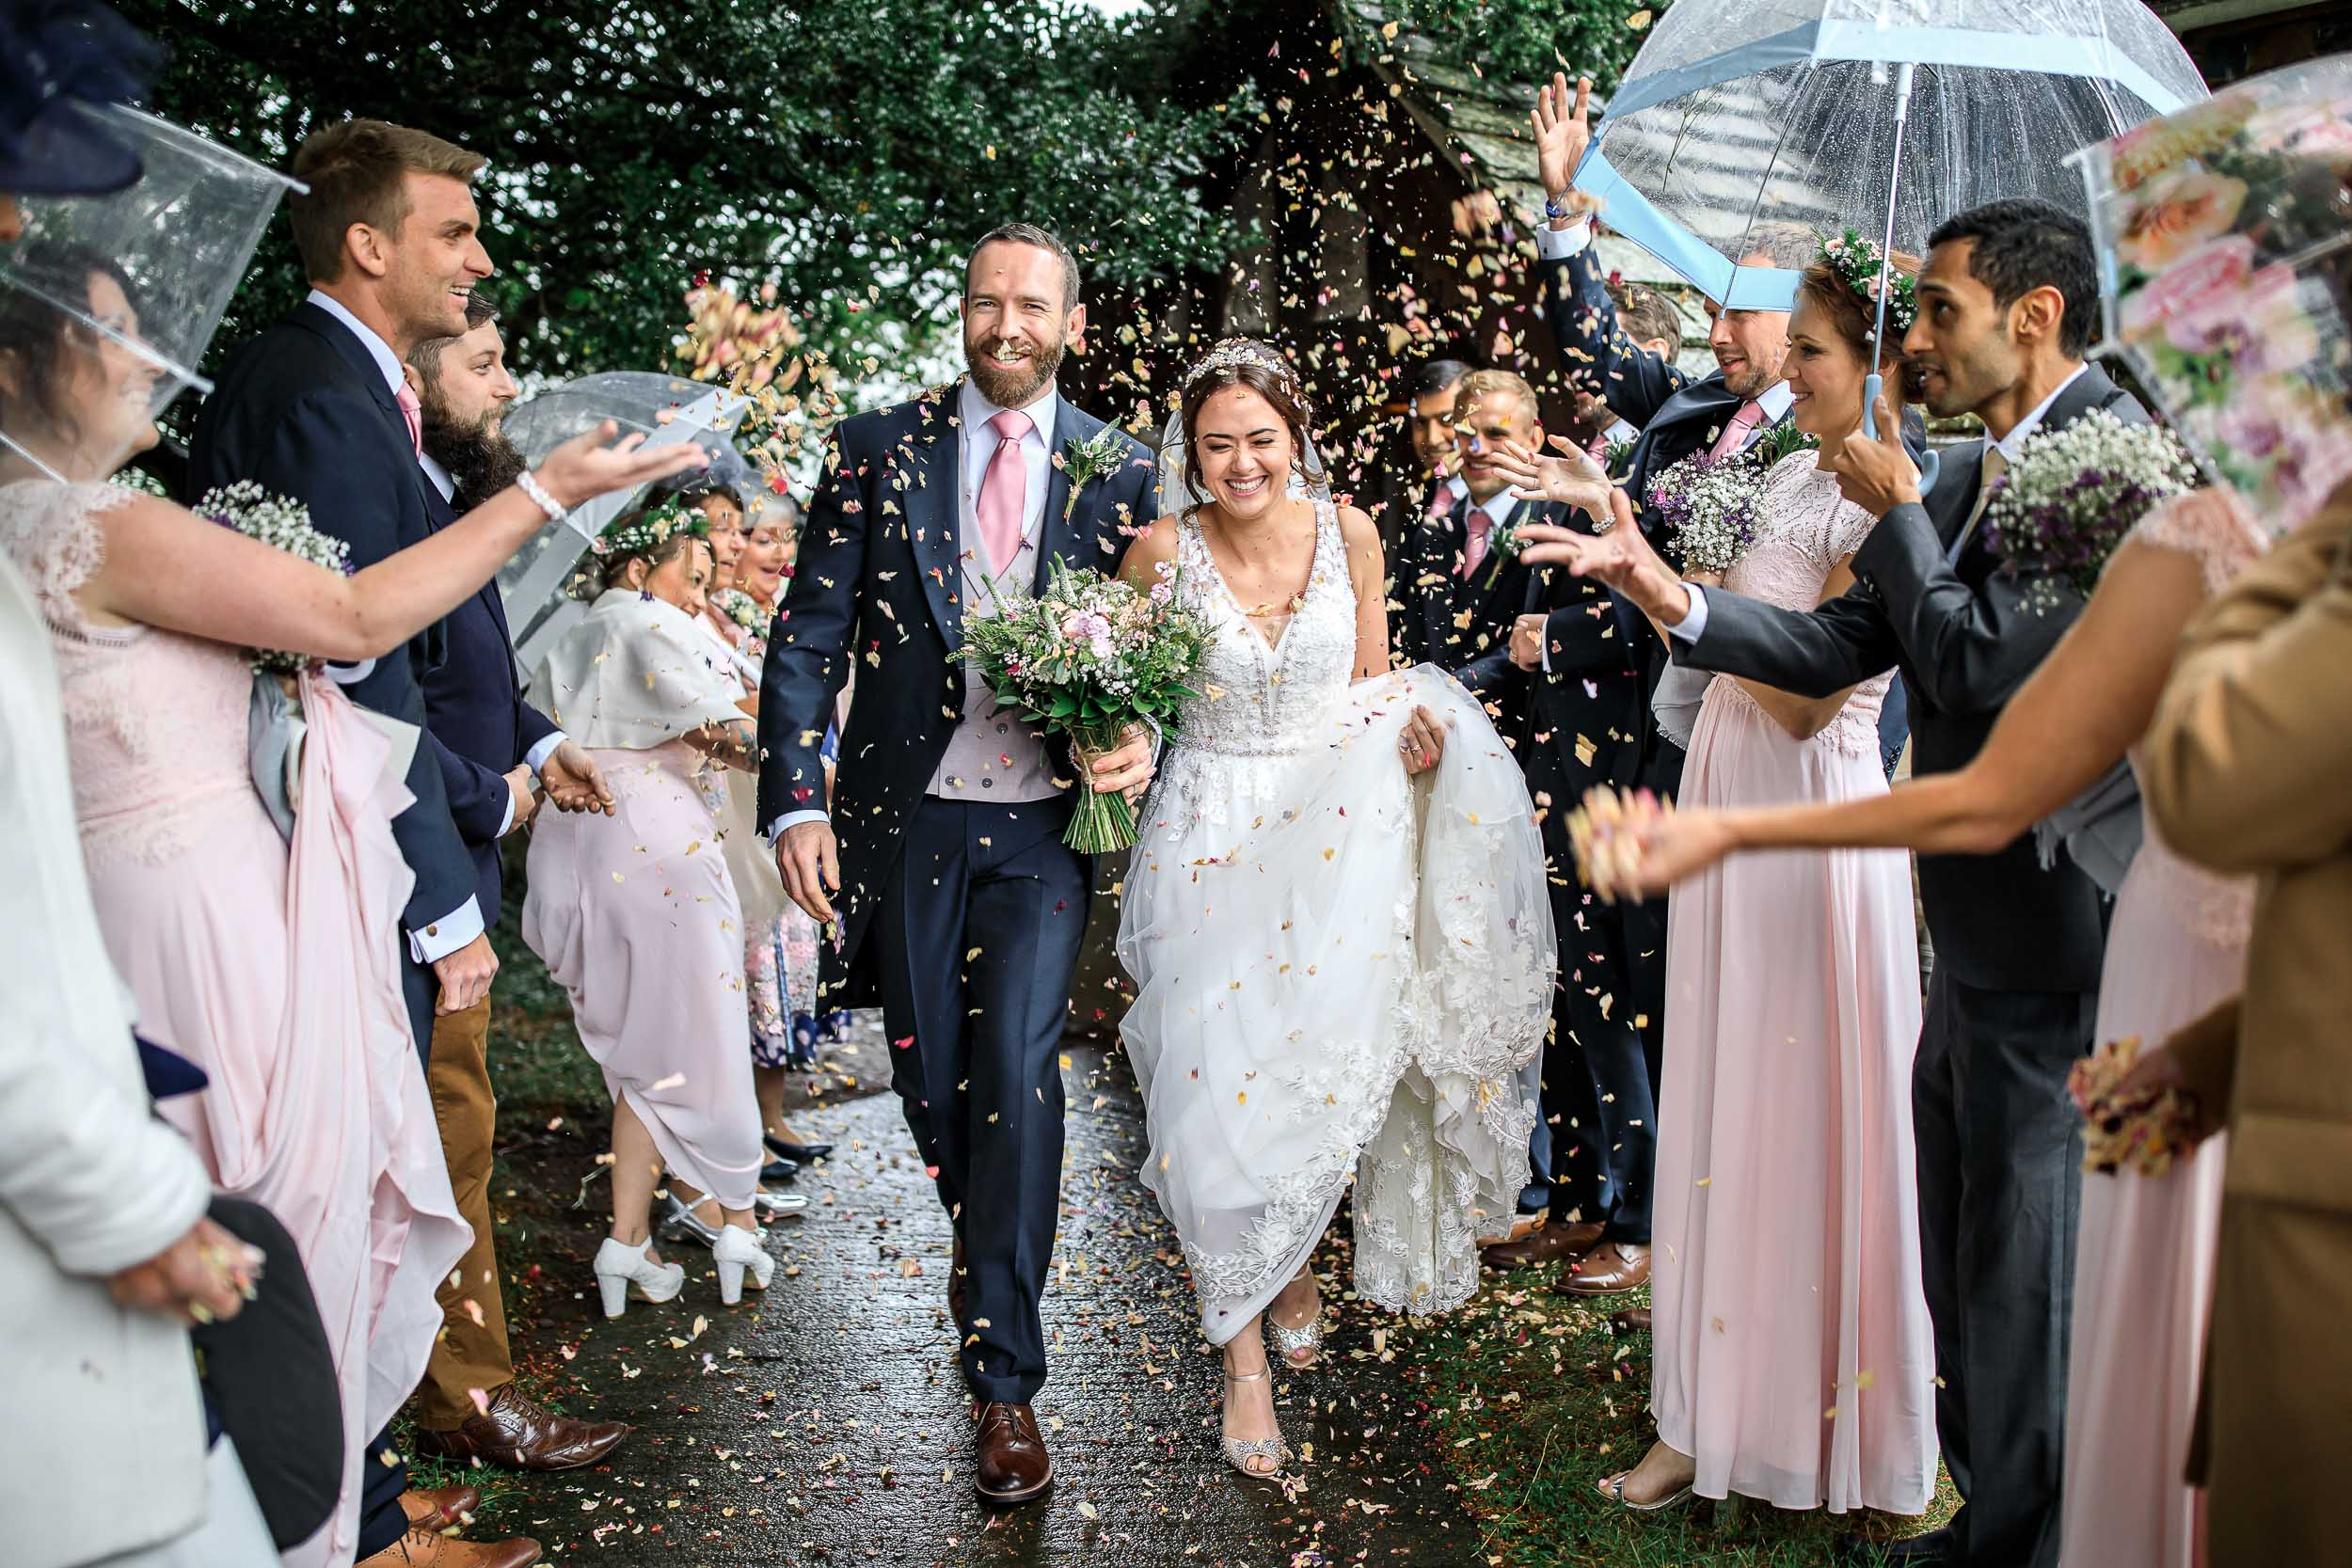 Herefordshire Wedding Photographer David Liebst - Wedding photographers in Herefordshire, Bespoke by Nature